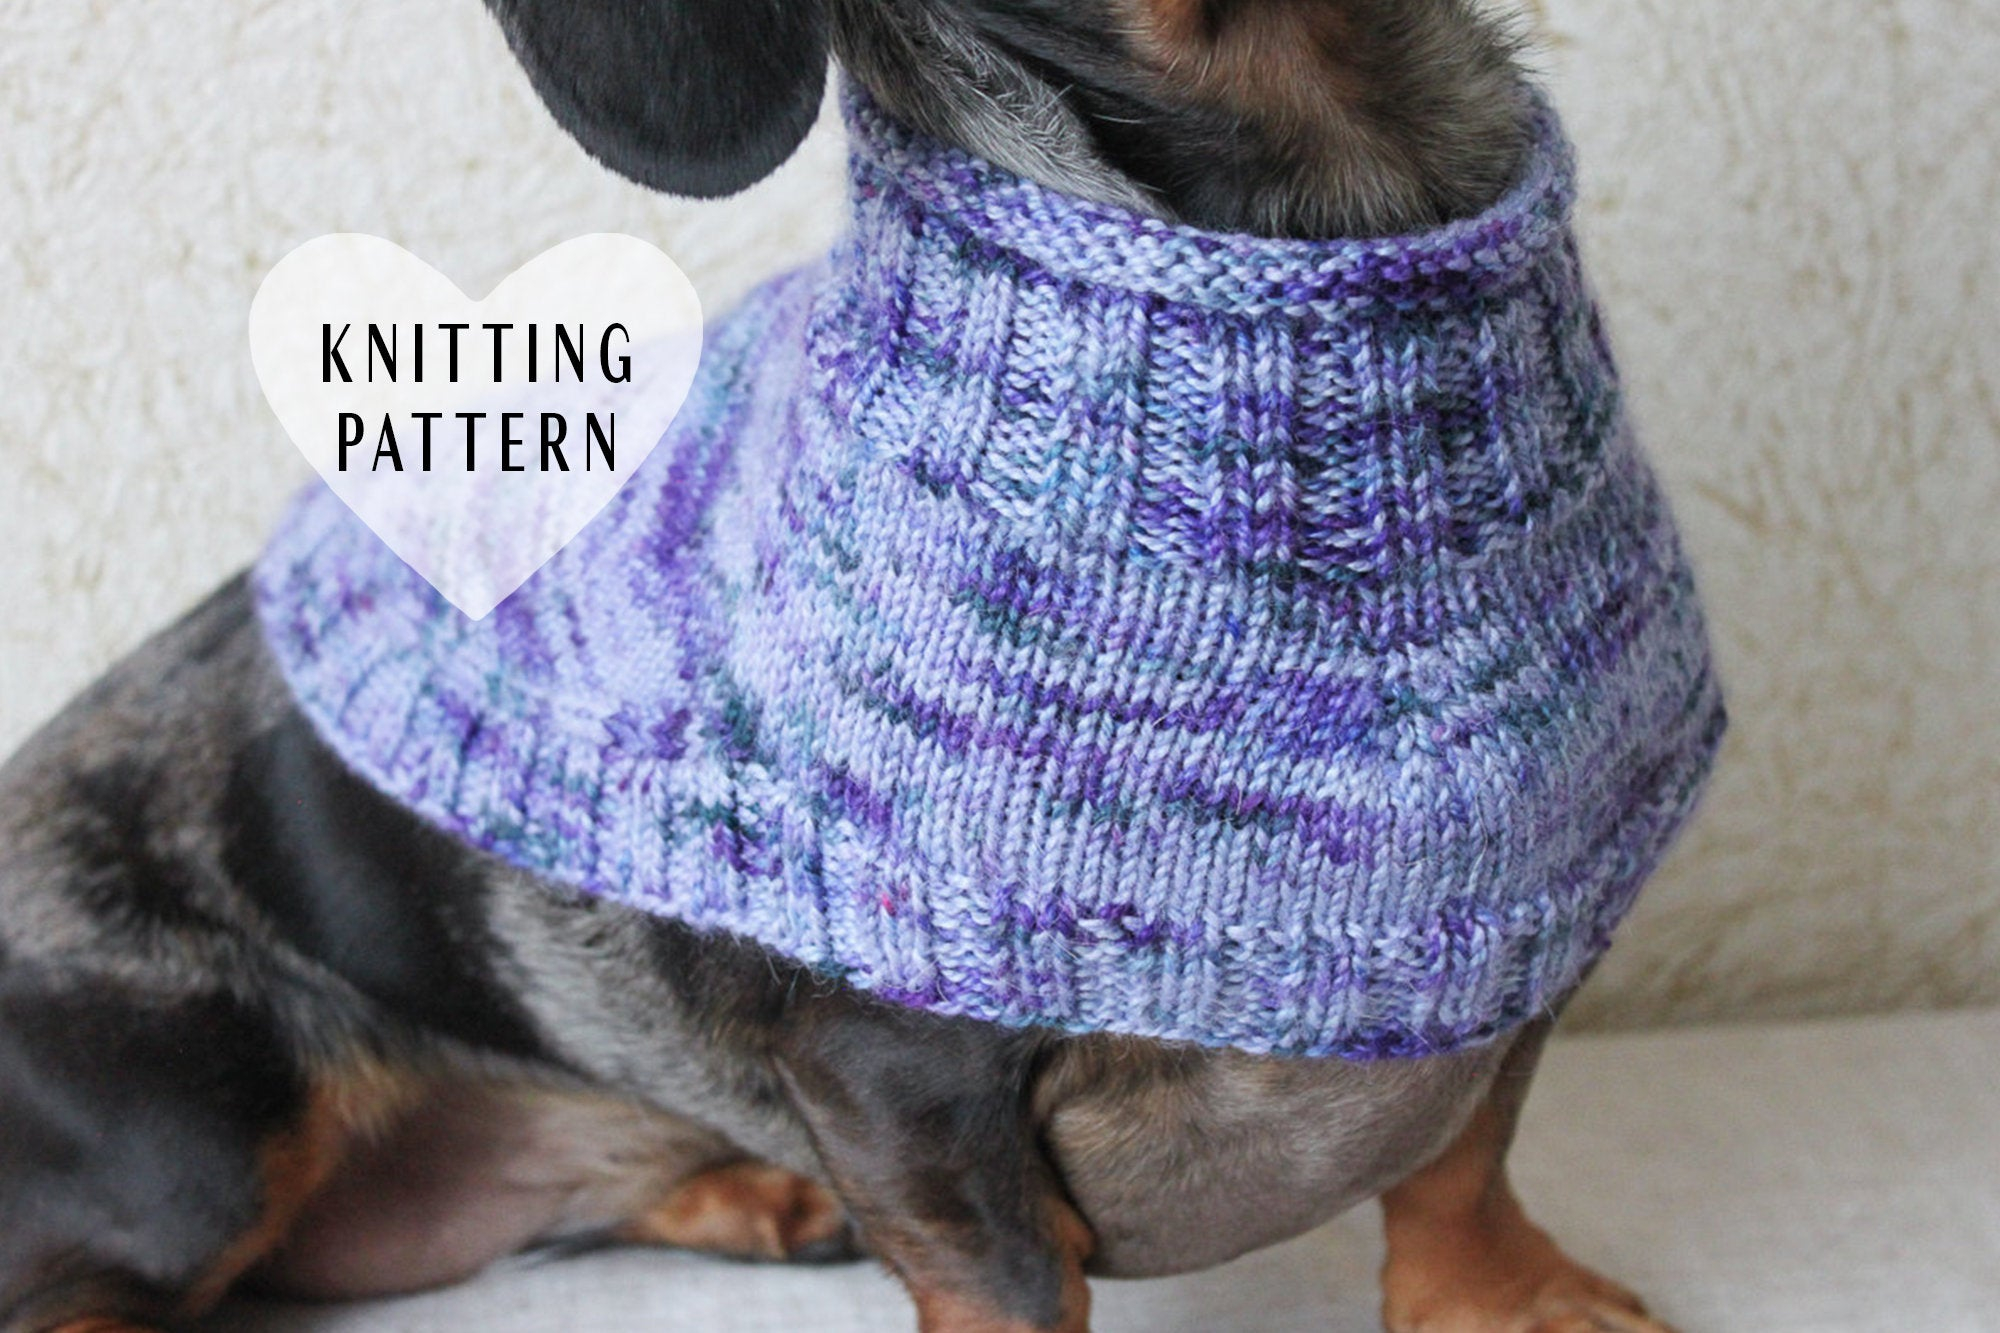 Dachshund Jumper Knitting Pattern Knitting Pattern Dachshund Capelet Dog Sweater Knitted Dog Cowl Miniature Dachshund Clothes Dog Clothes Doxie Capelet Pet Clothes